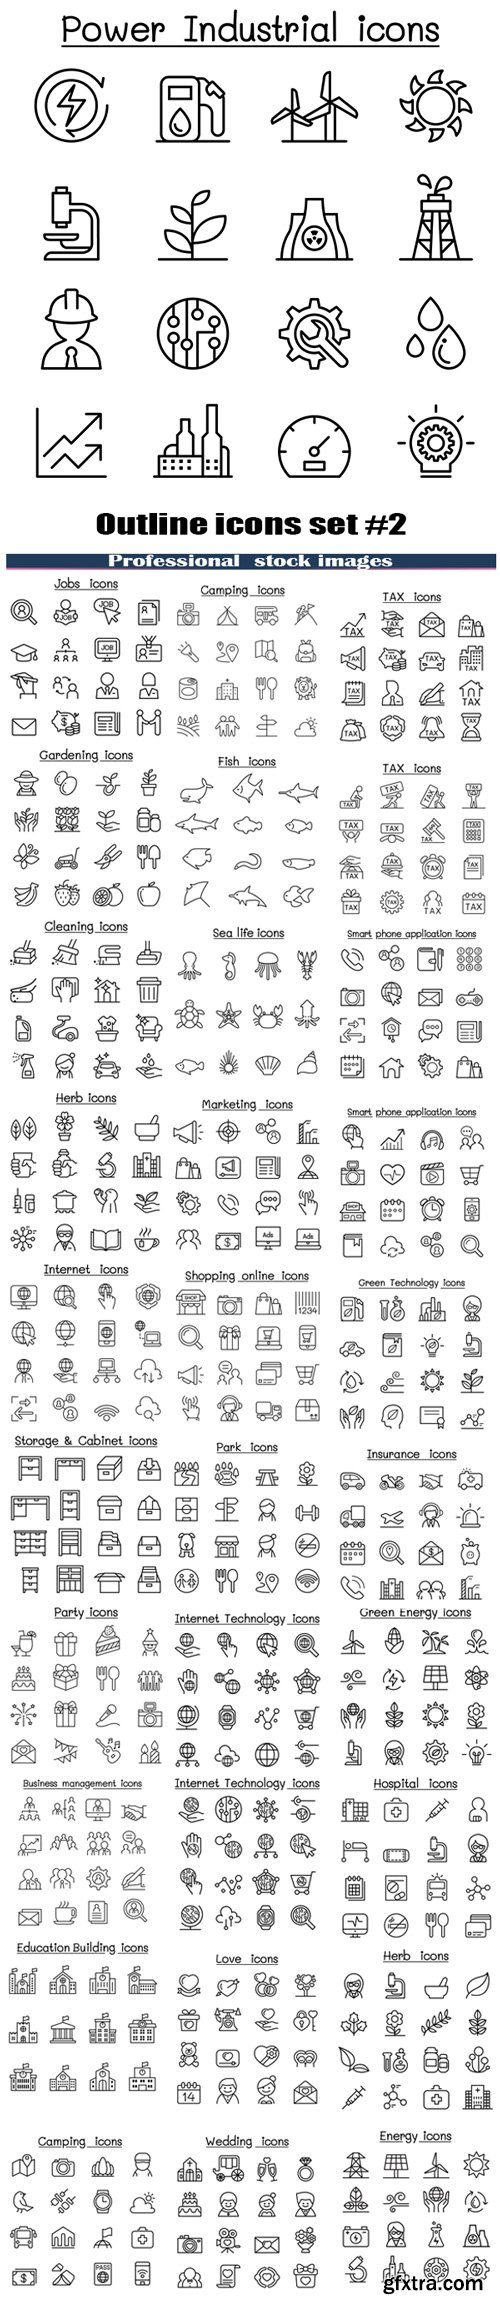 Outline icons set #2